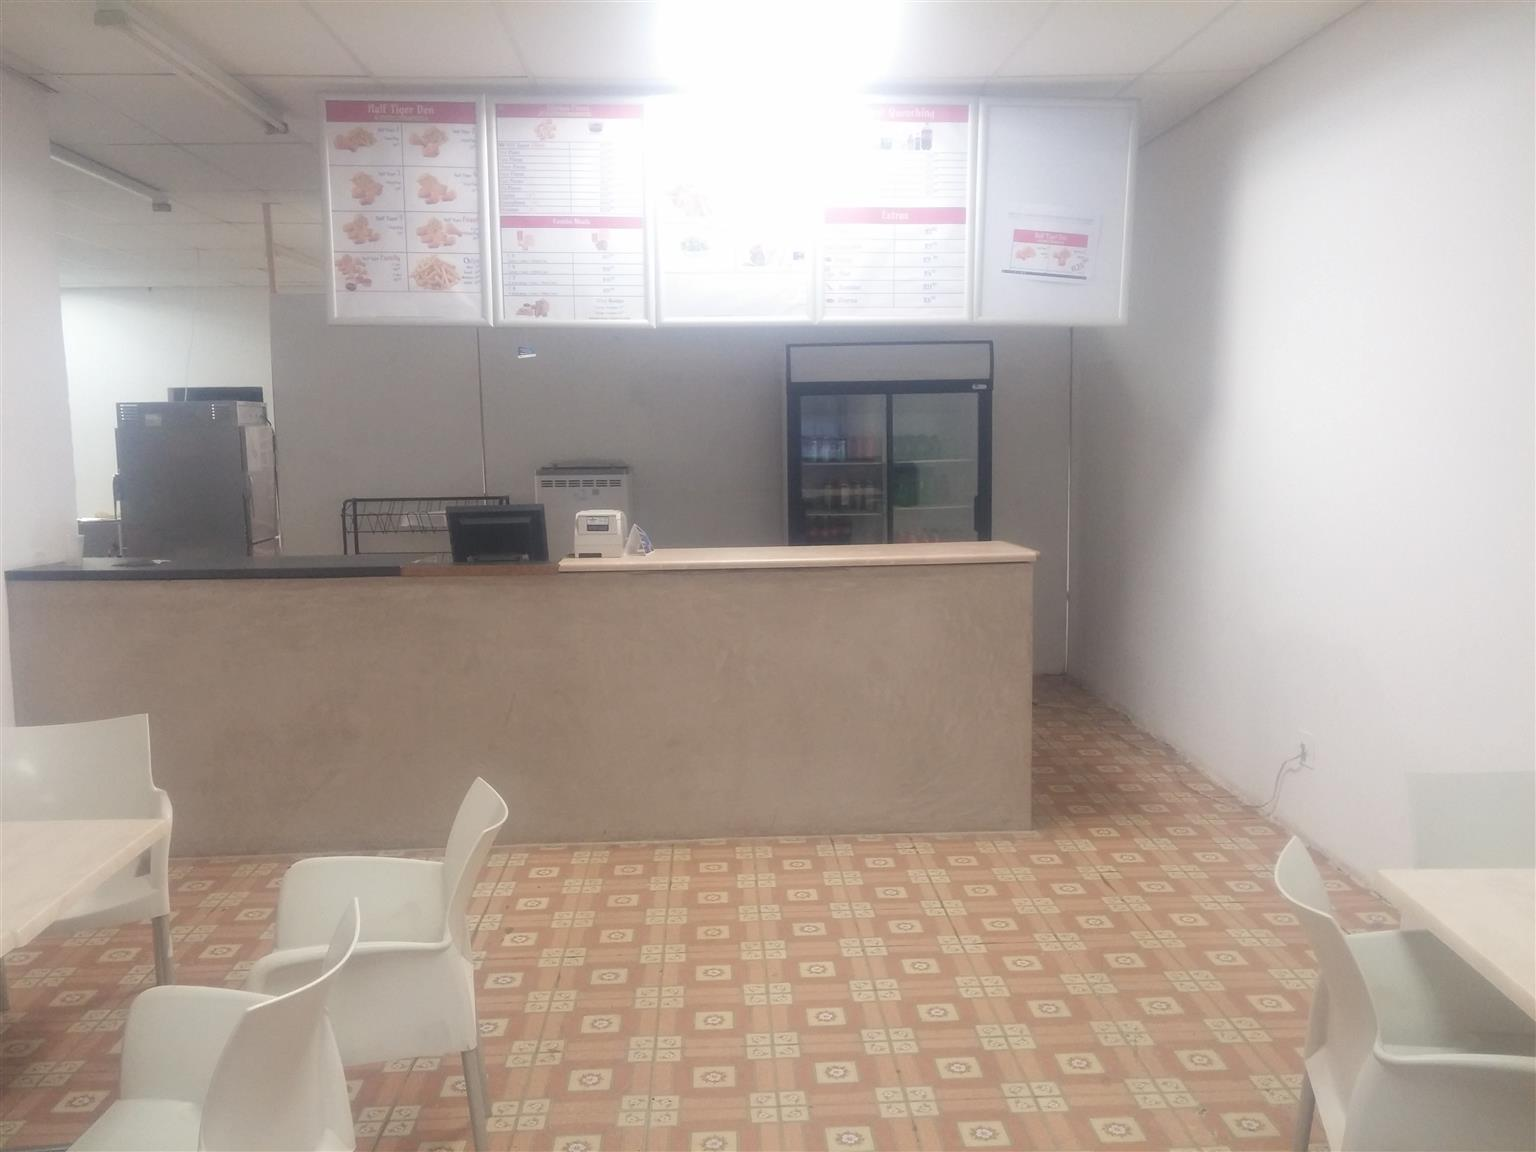 Restaurant Fried Chicken Outlet for sale in Big Tree Mall, Moloto